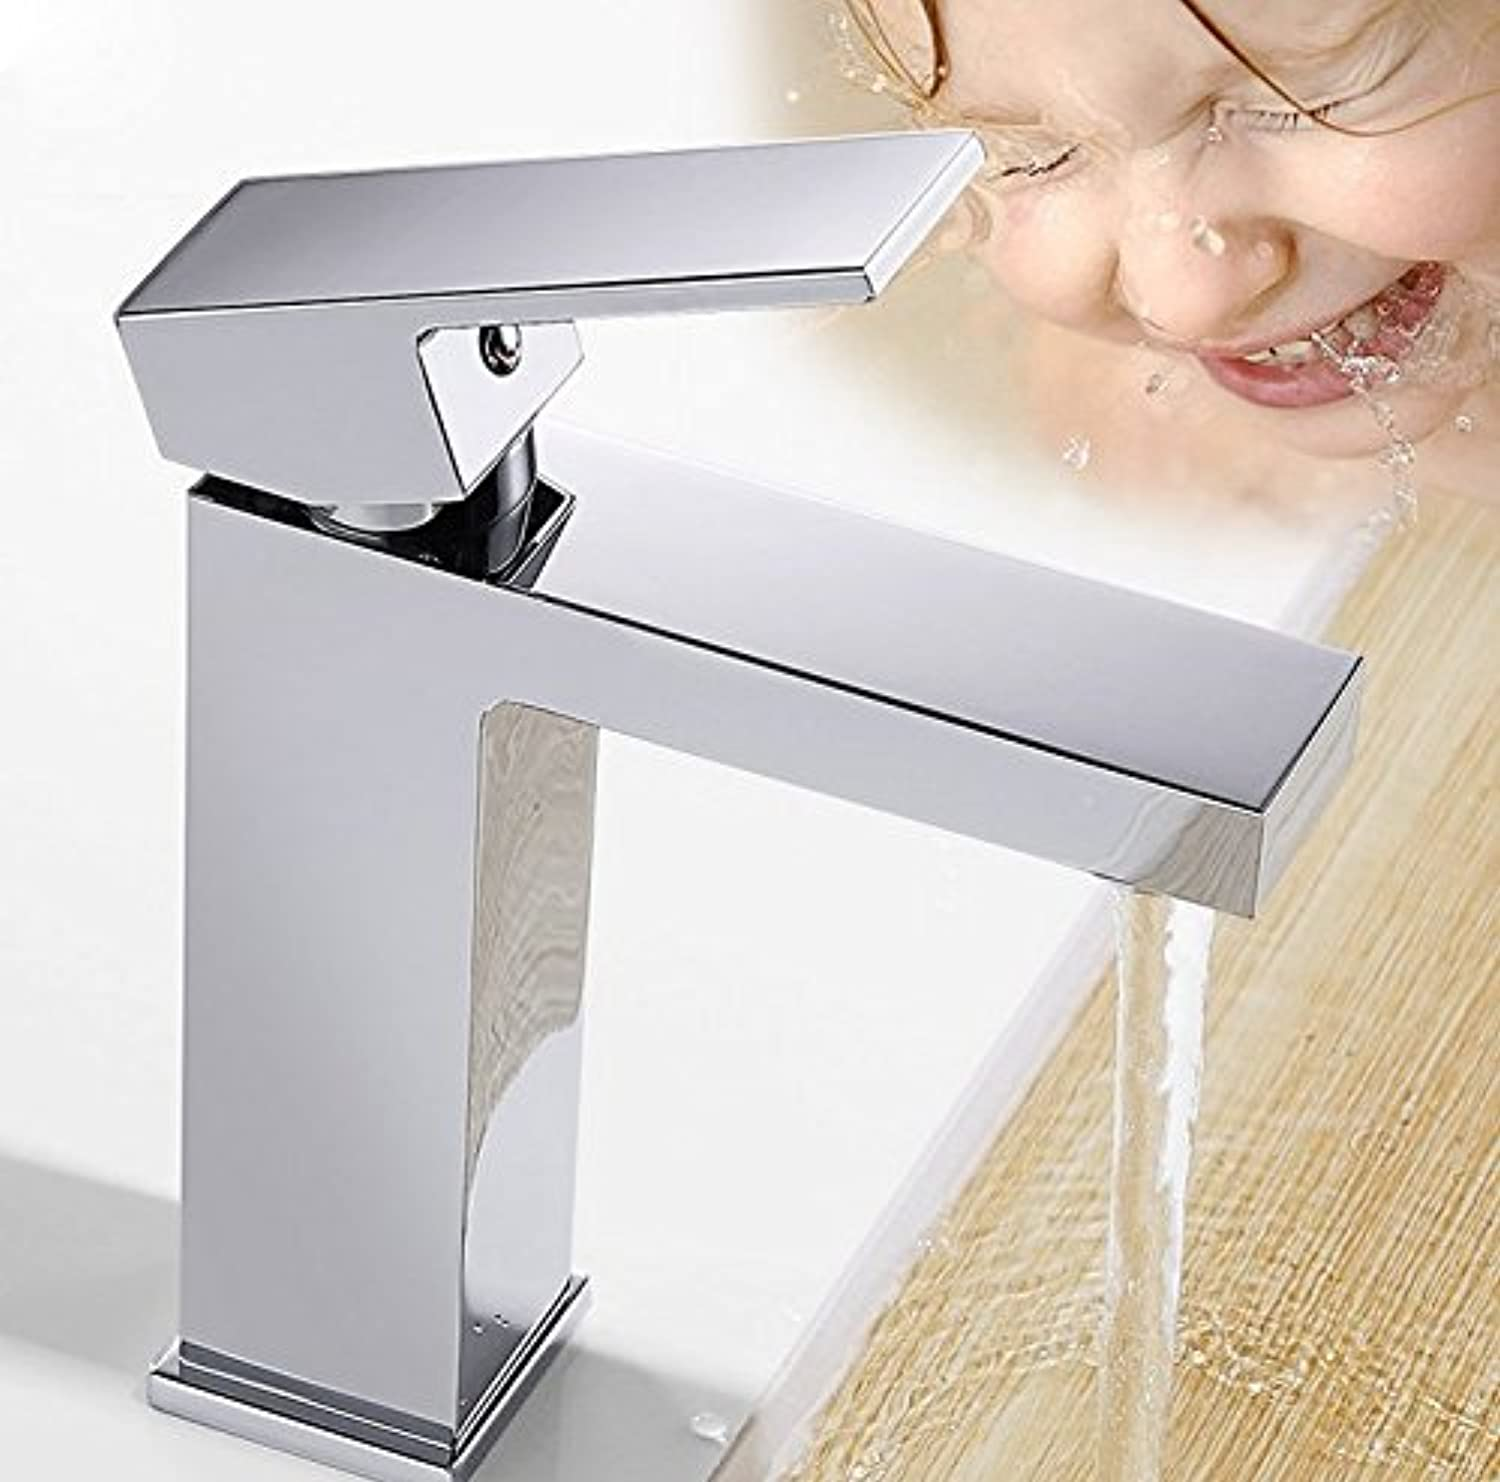 Mangeoo Faucet One Piece Faucet, All Copper, Four Square Faucet, Hot And Cold Basin Faucet Sanitary Ware.